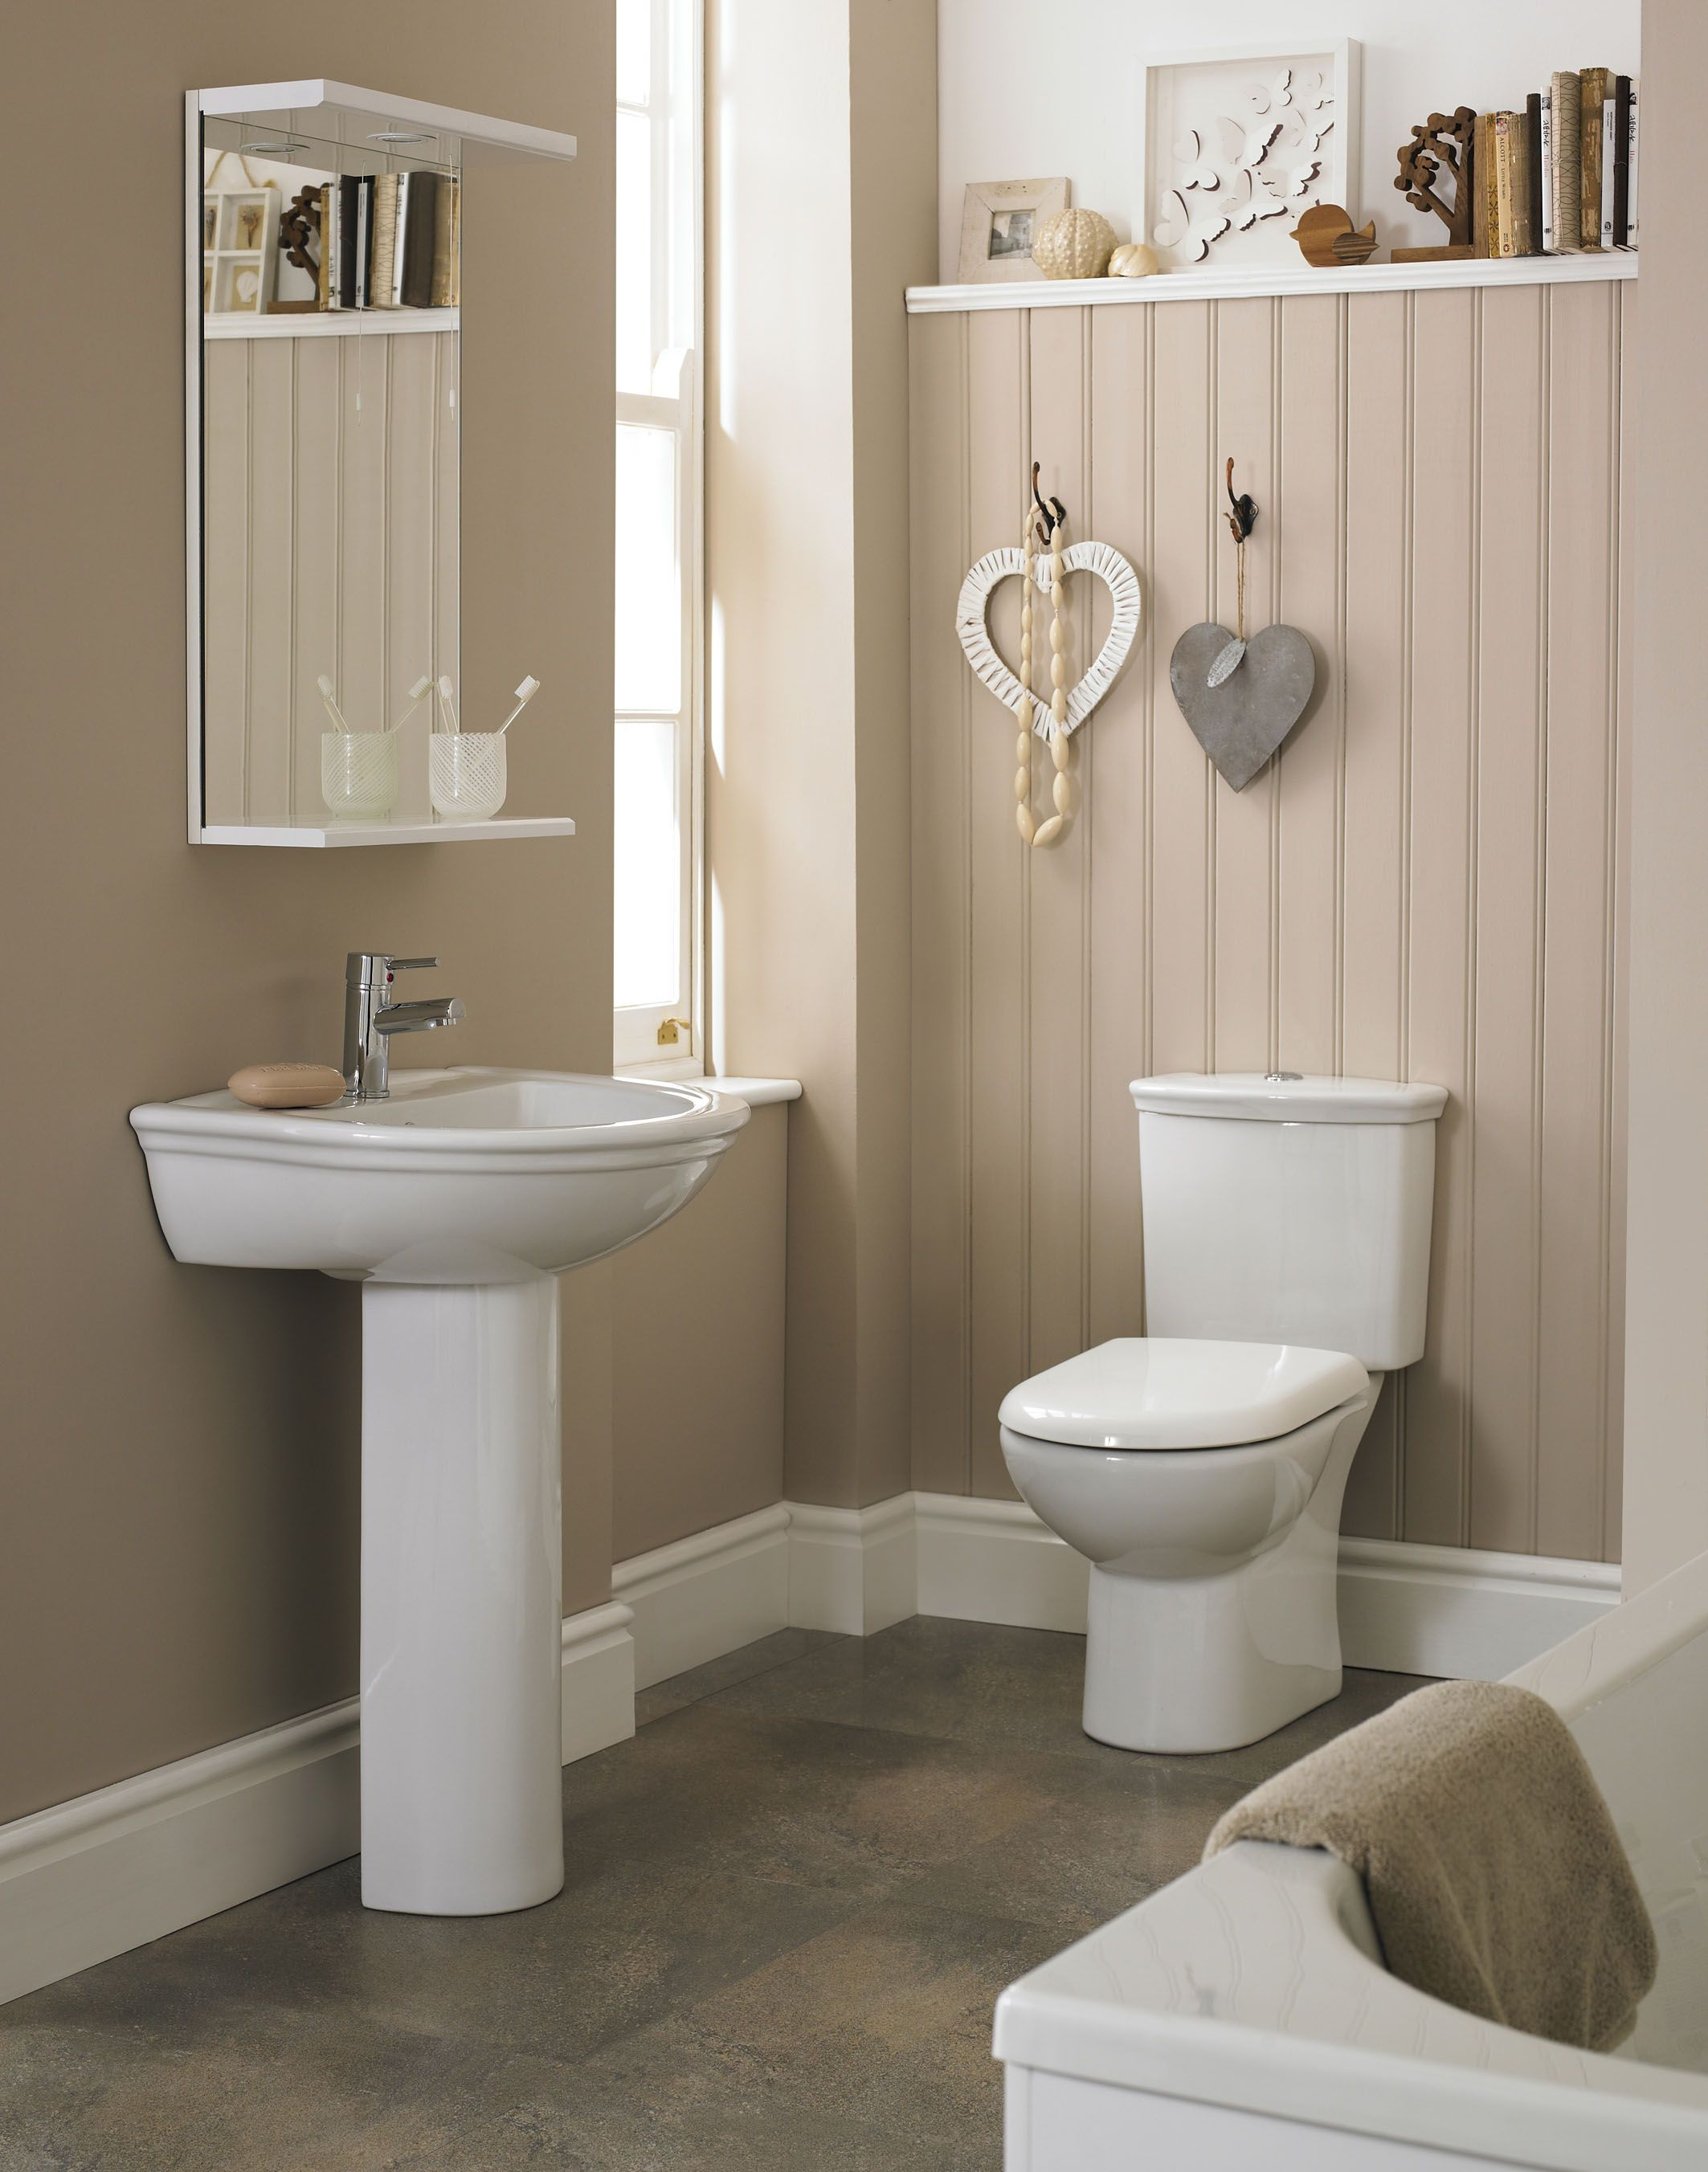 Pavia Bathroom Collection Projects Pinterest Bathroom Collections - Premier bathroom collection